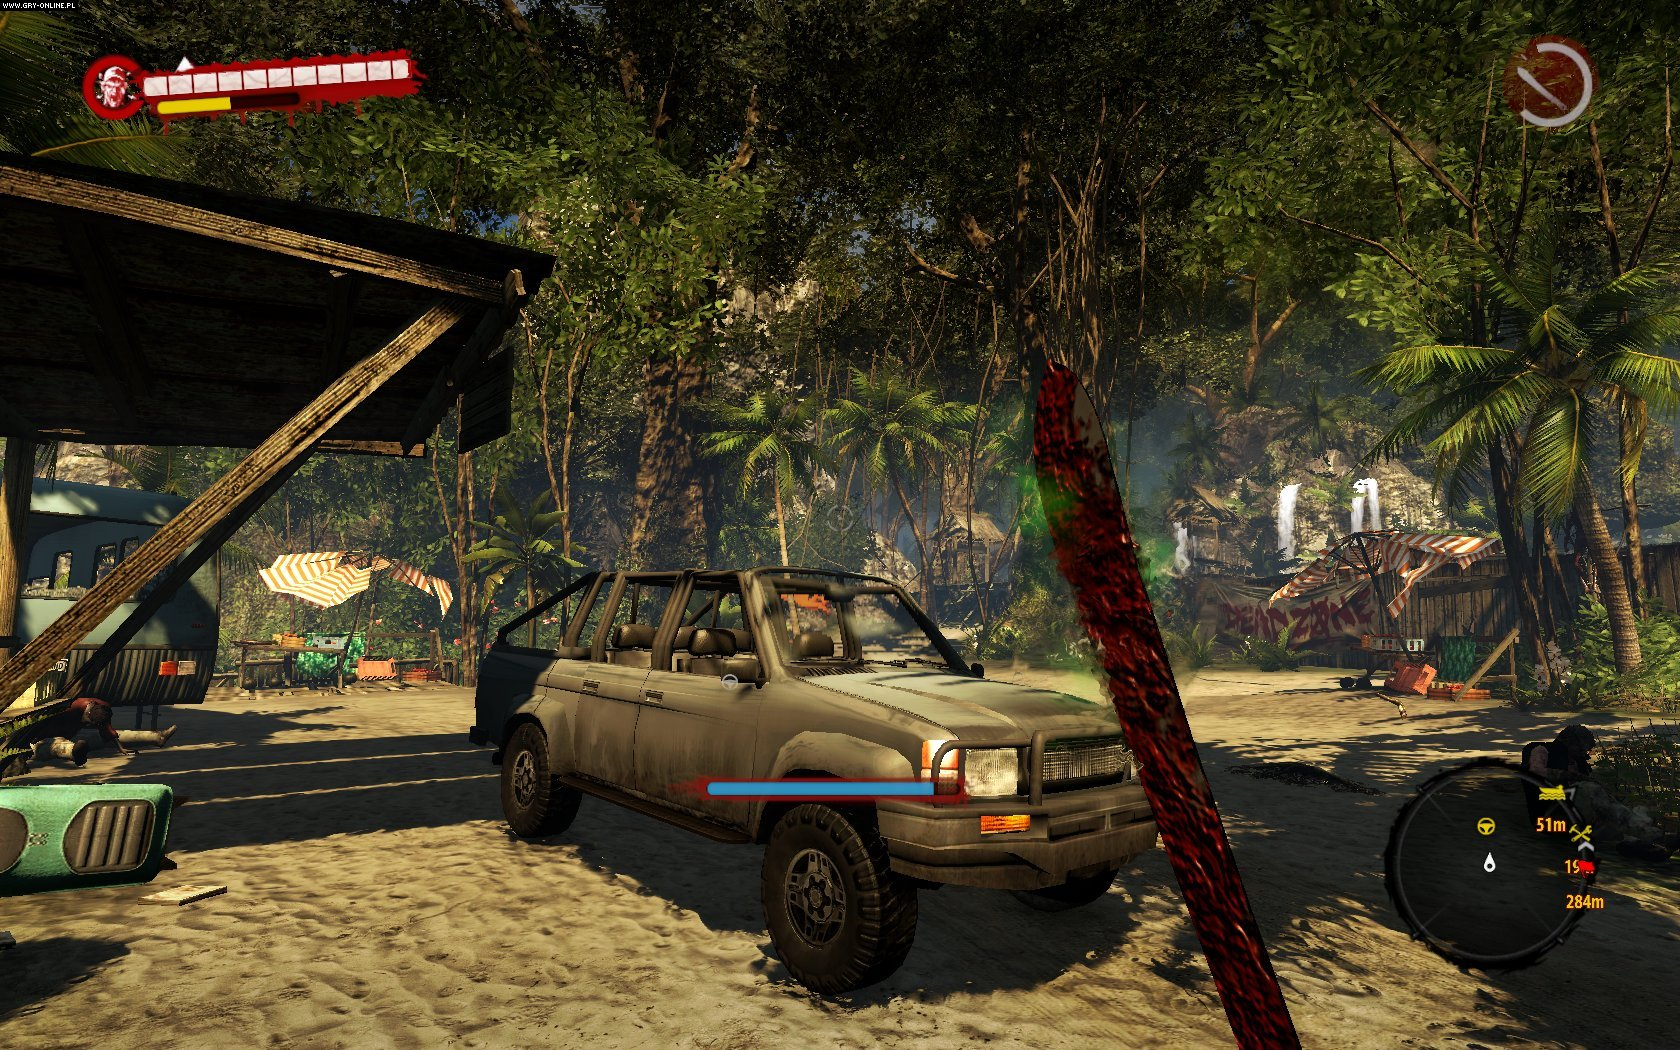 Dead Island Riptide PC Gry Screen 9/100, Techland, Deep Silver / Koch Media